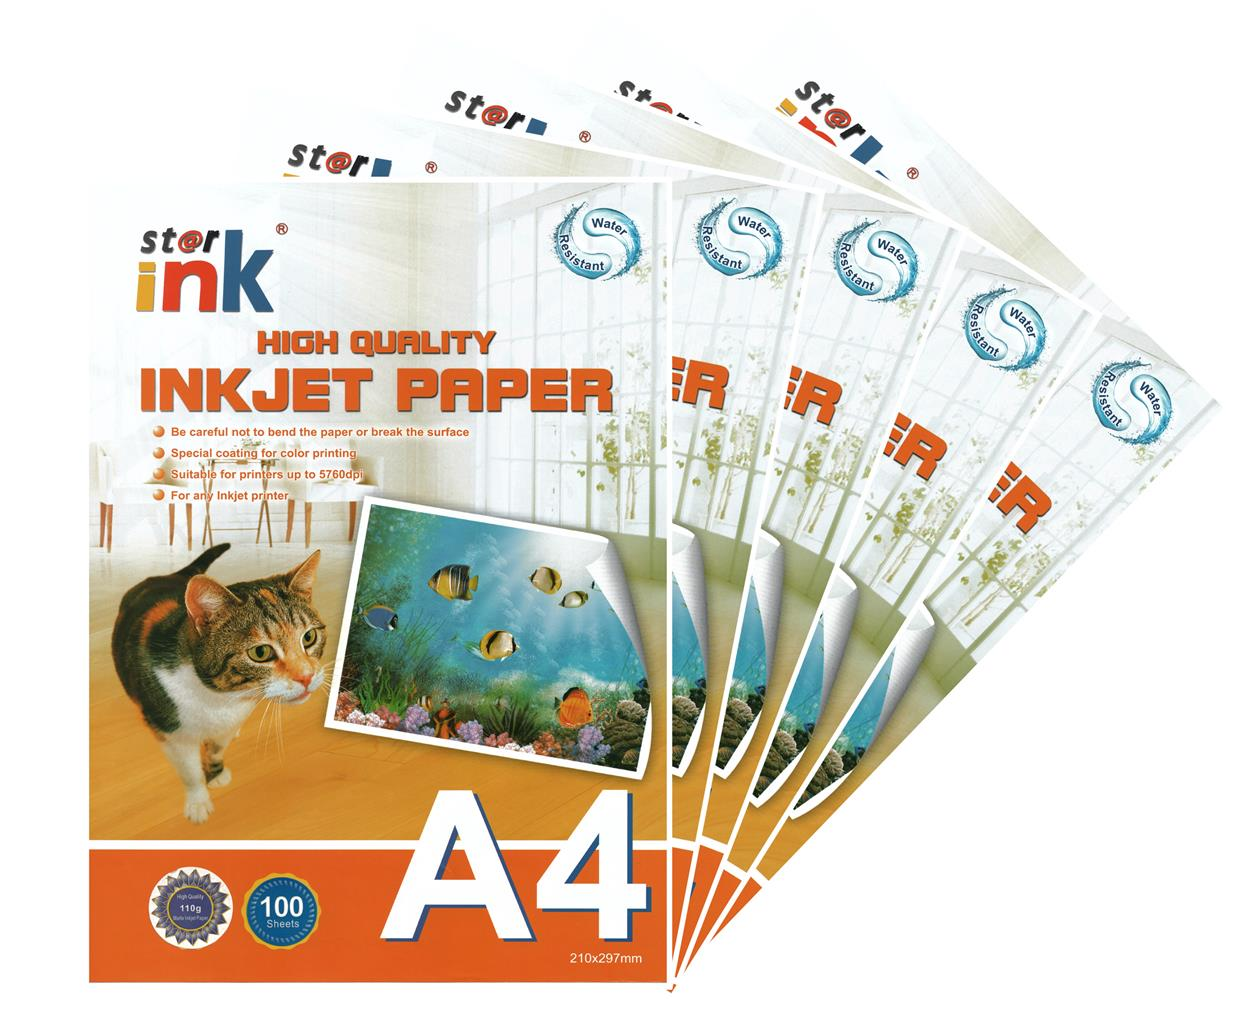 Starink A4 High Quality Inkjet Paper 100 sheets (1 Carton / 20 Unit)